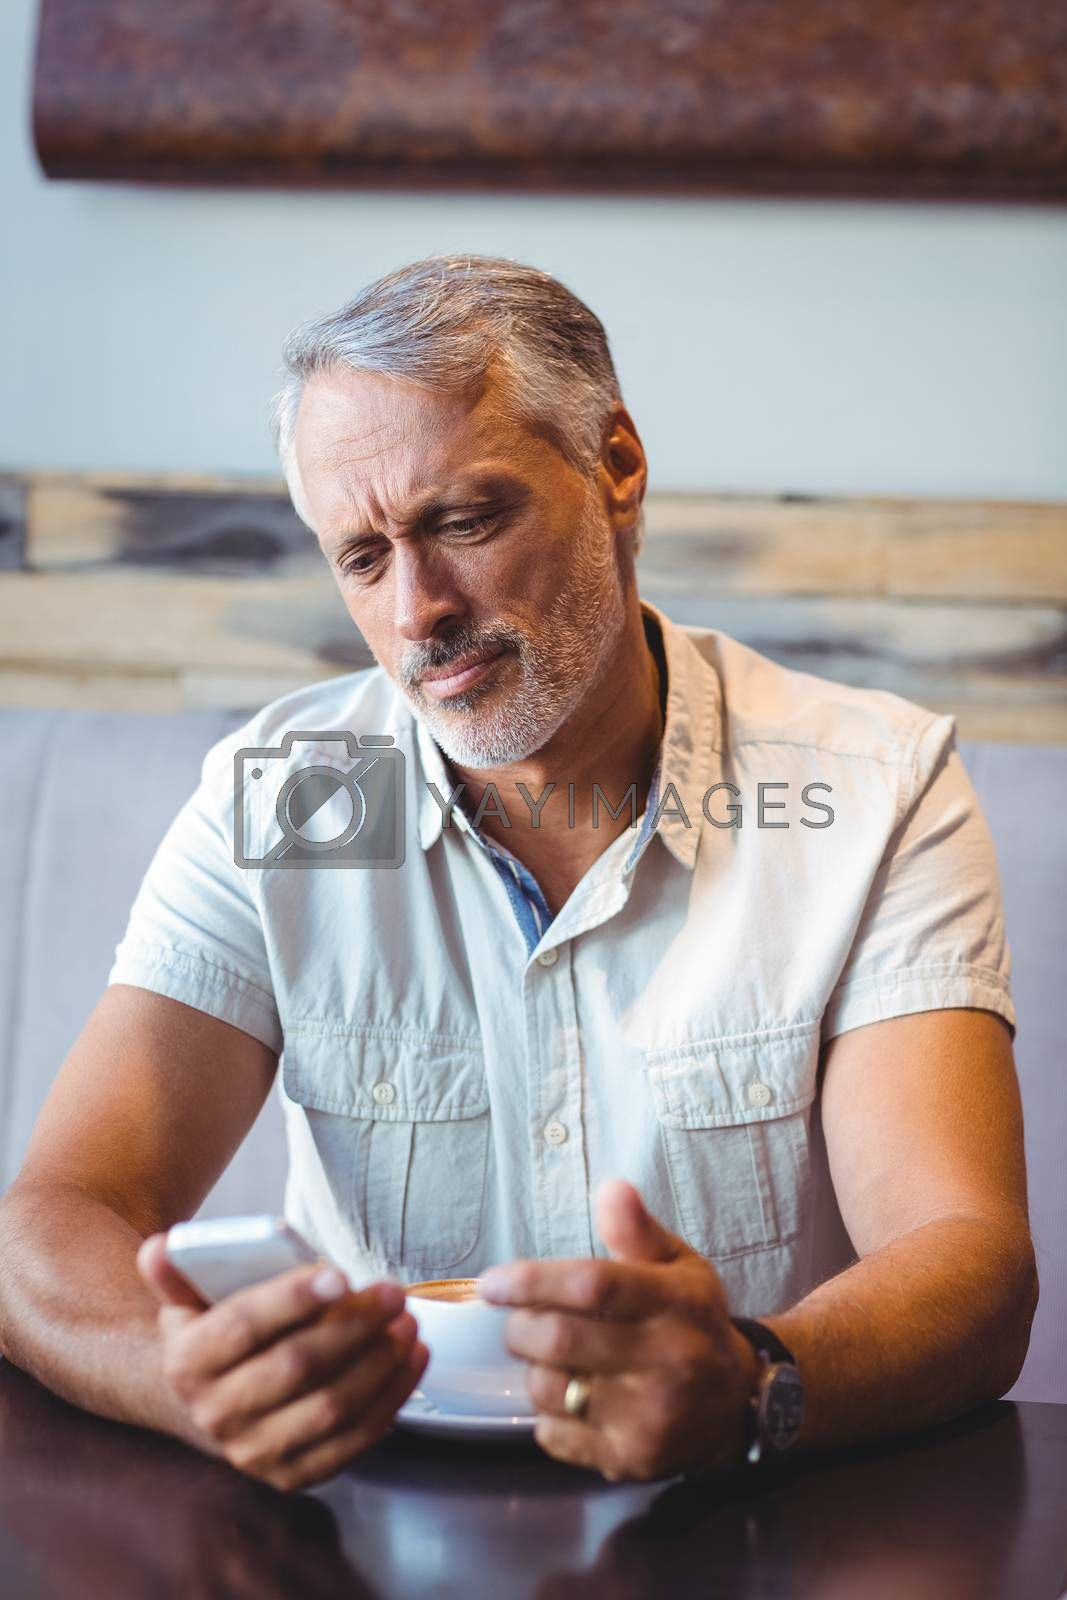 Royalty free image of Casual man using mobile phone in coffee shop by Wavebreakmedia